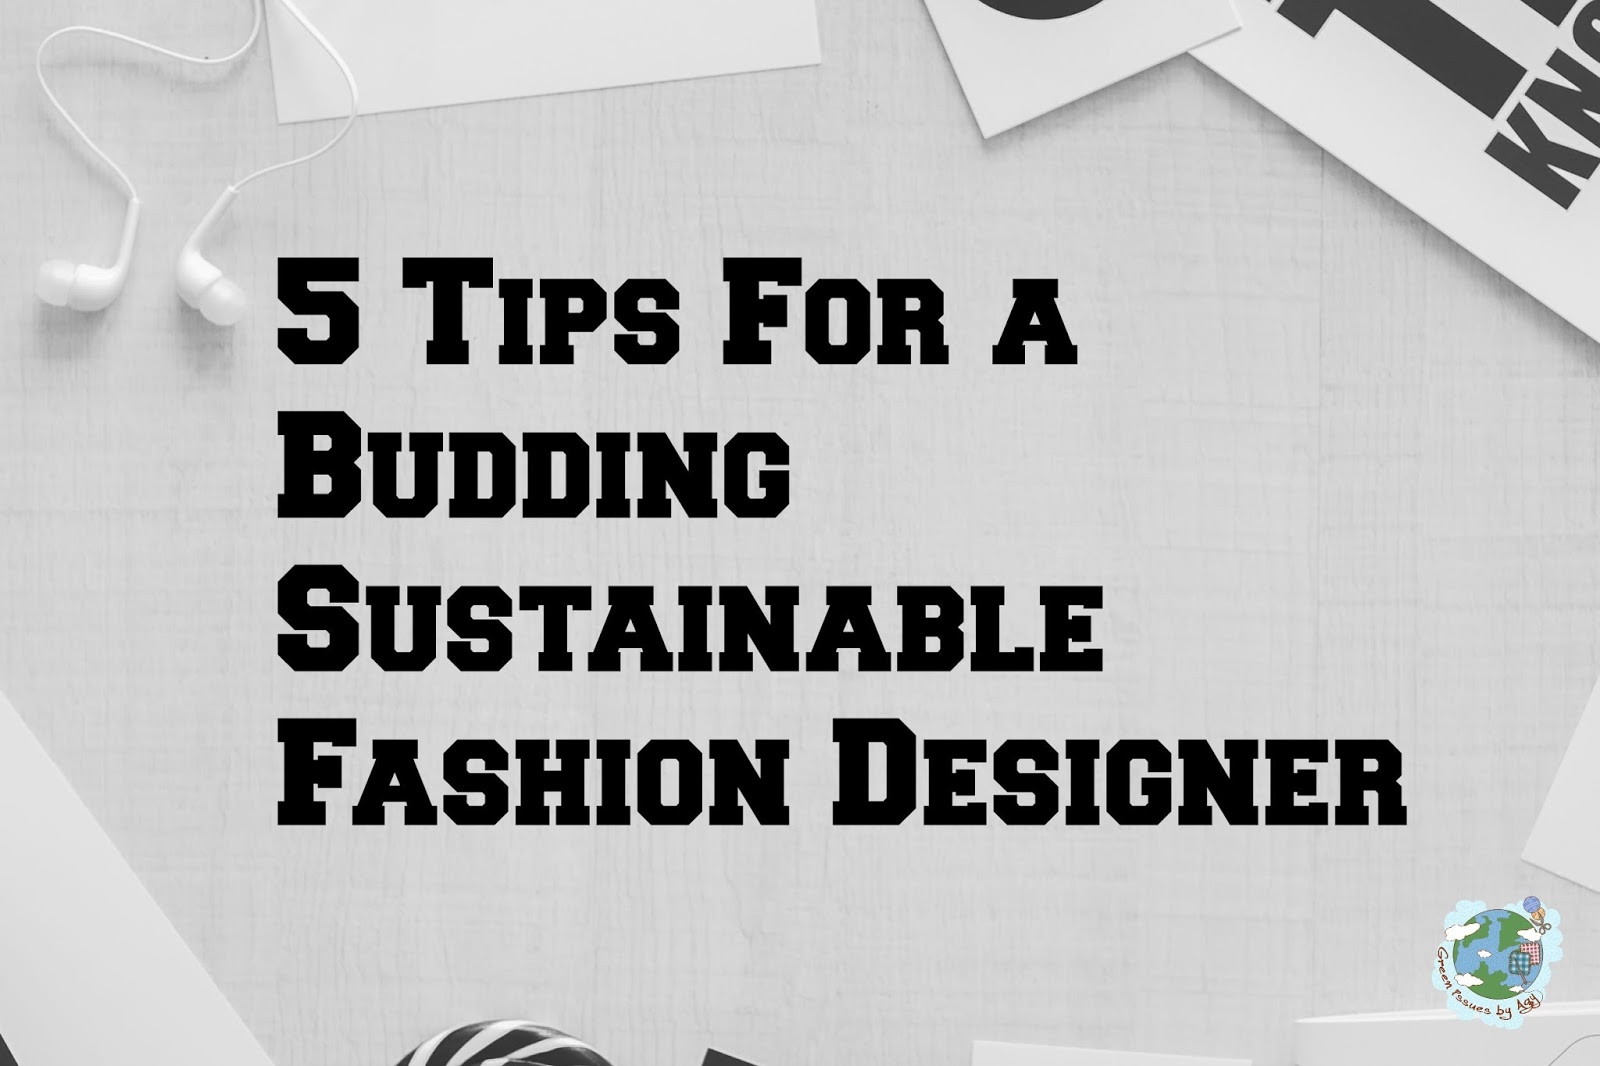 5 Tips For a Budding Sustainable Fashion Designer